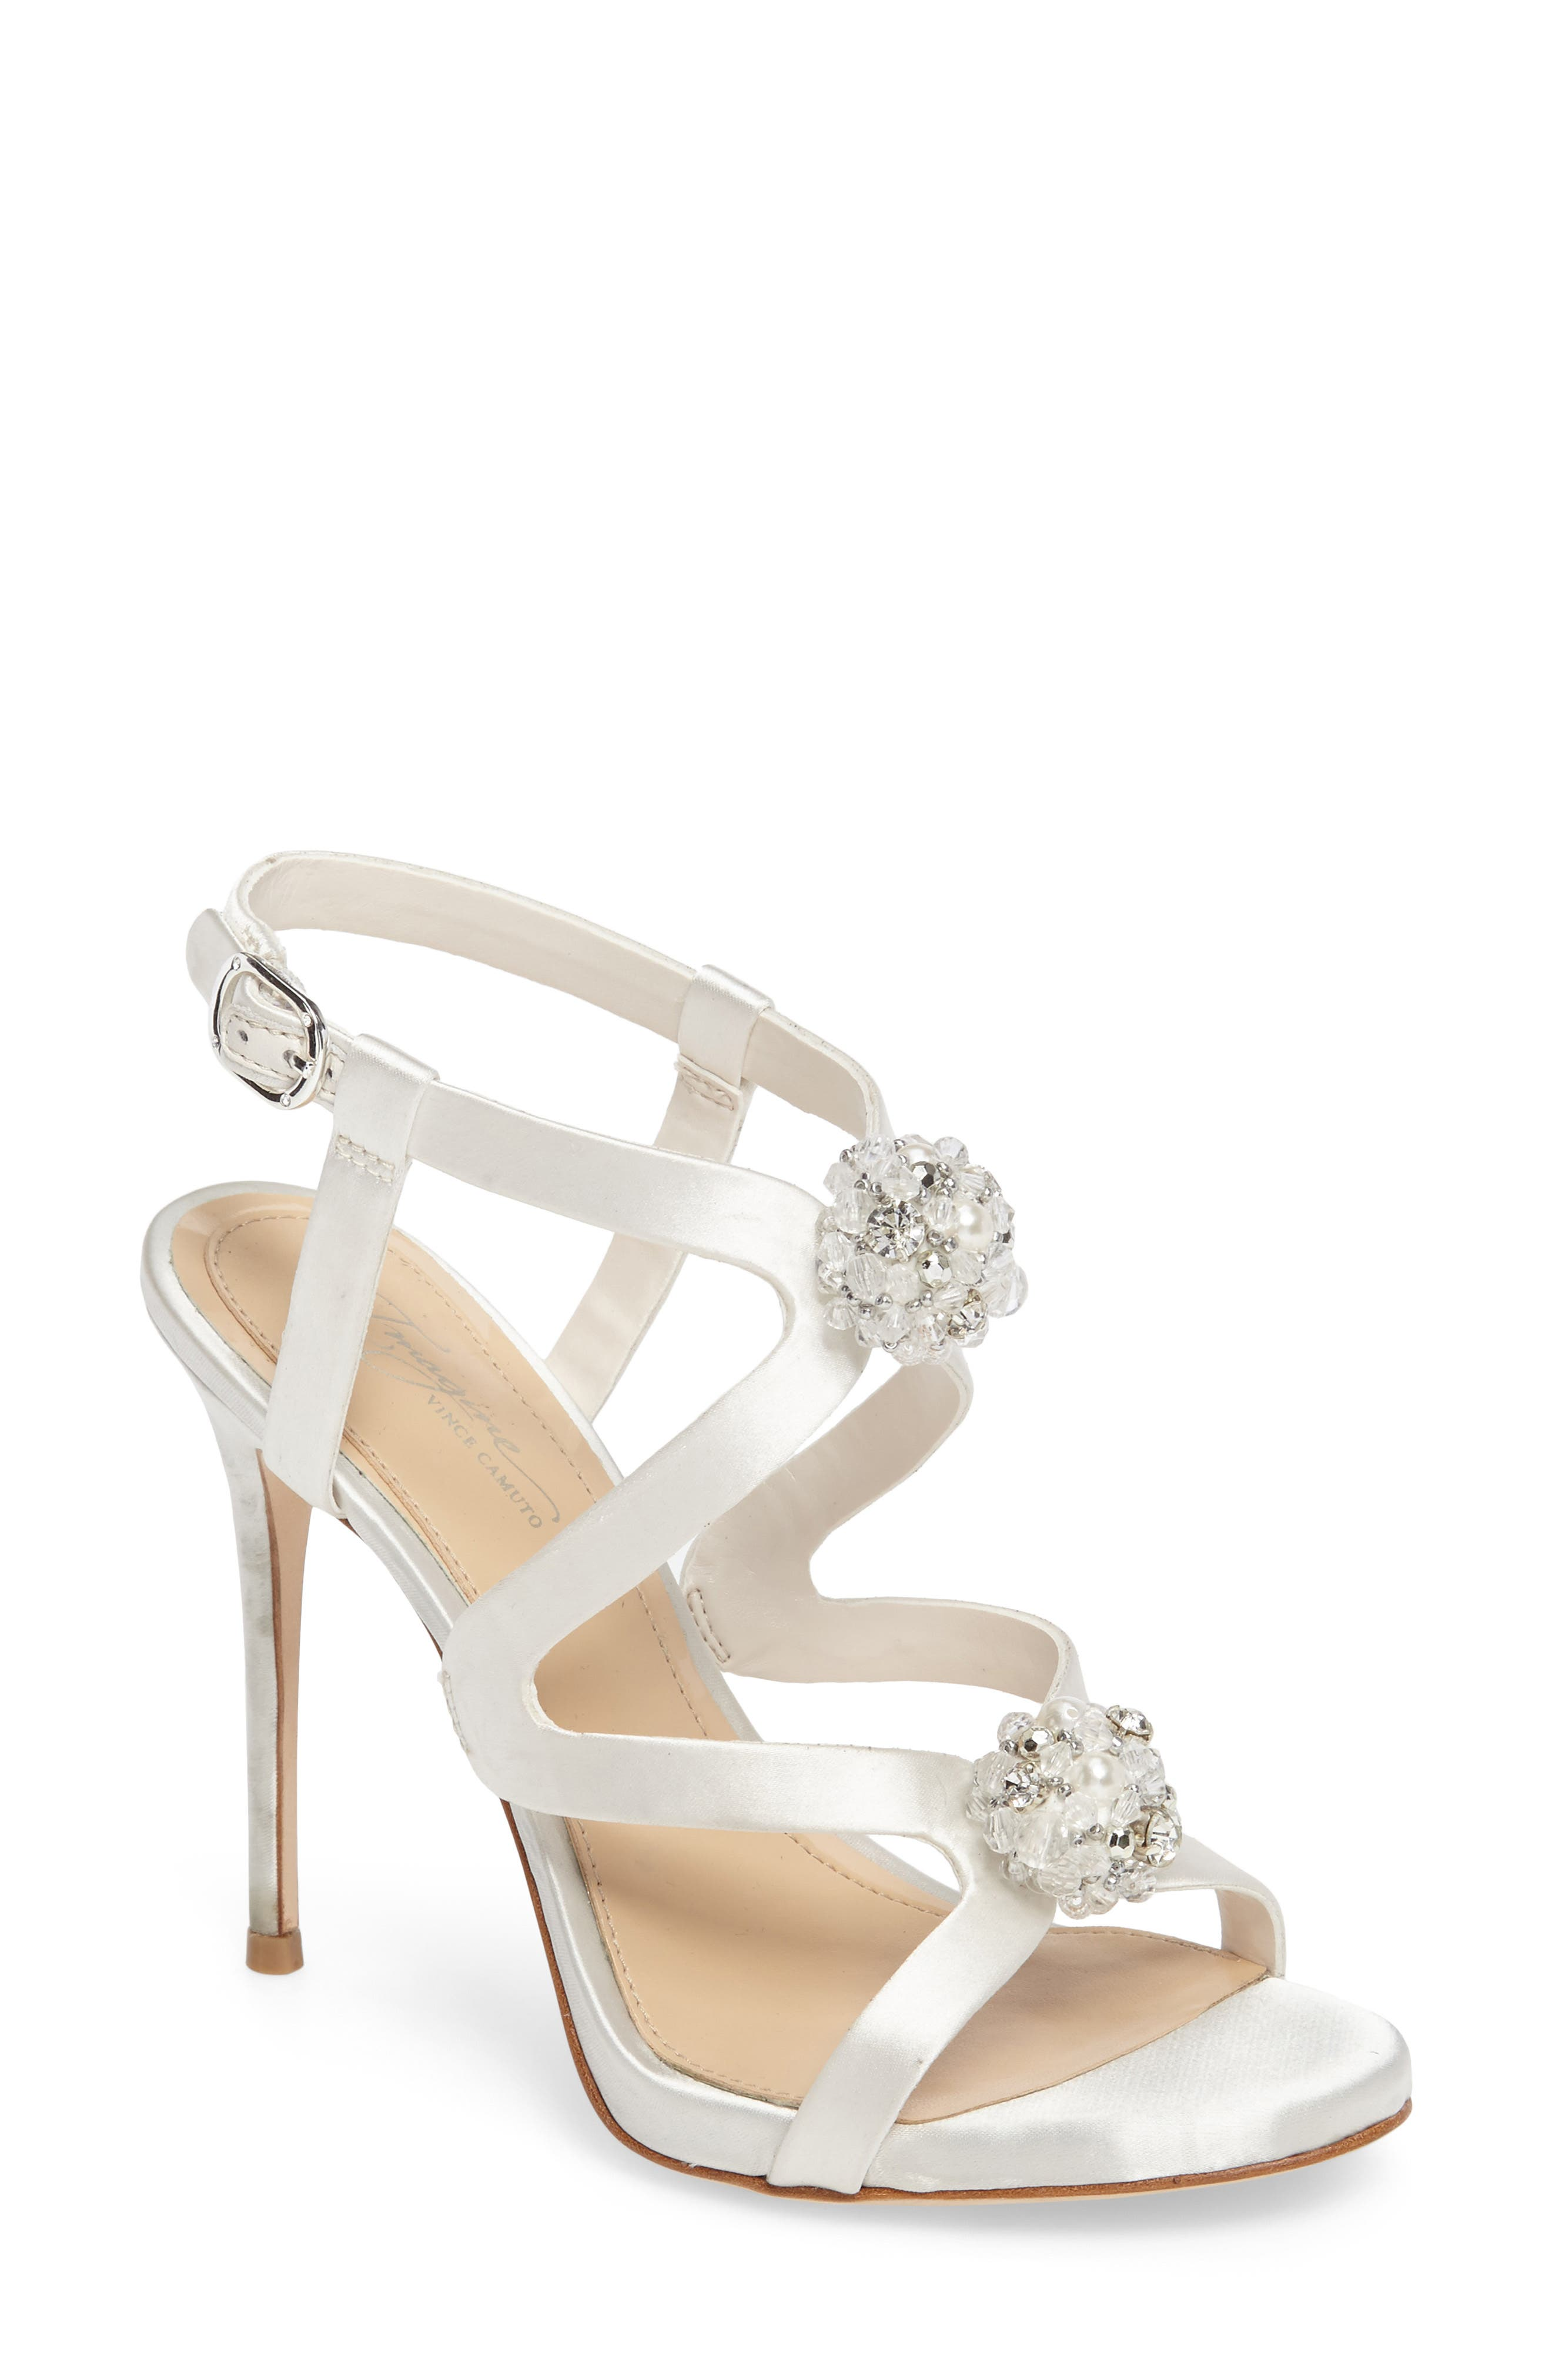 Daija Sandal,                             Main thumbnail 1, color,                             Ivory Satin